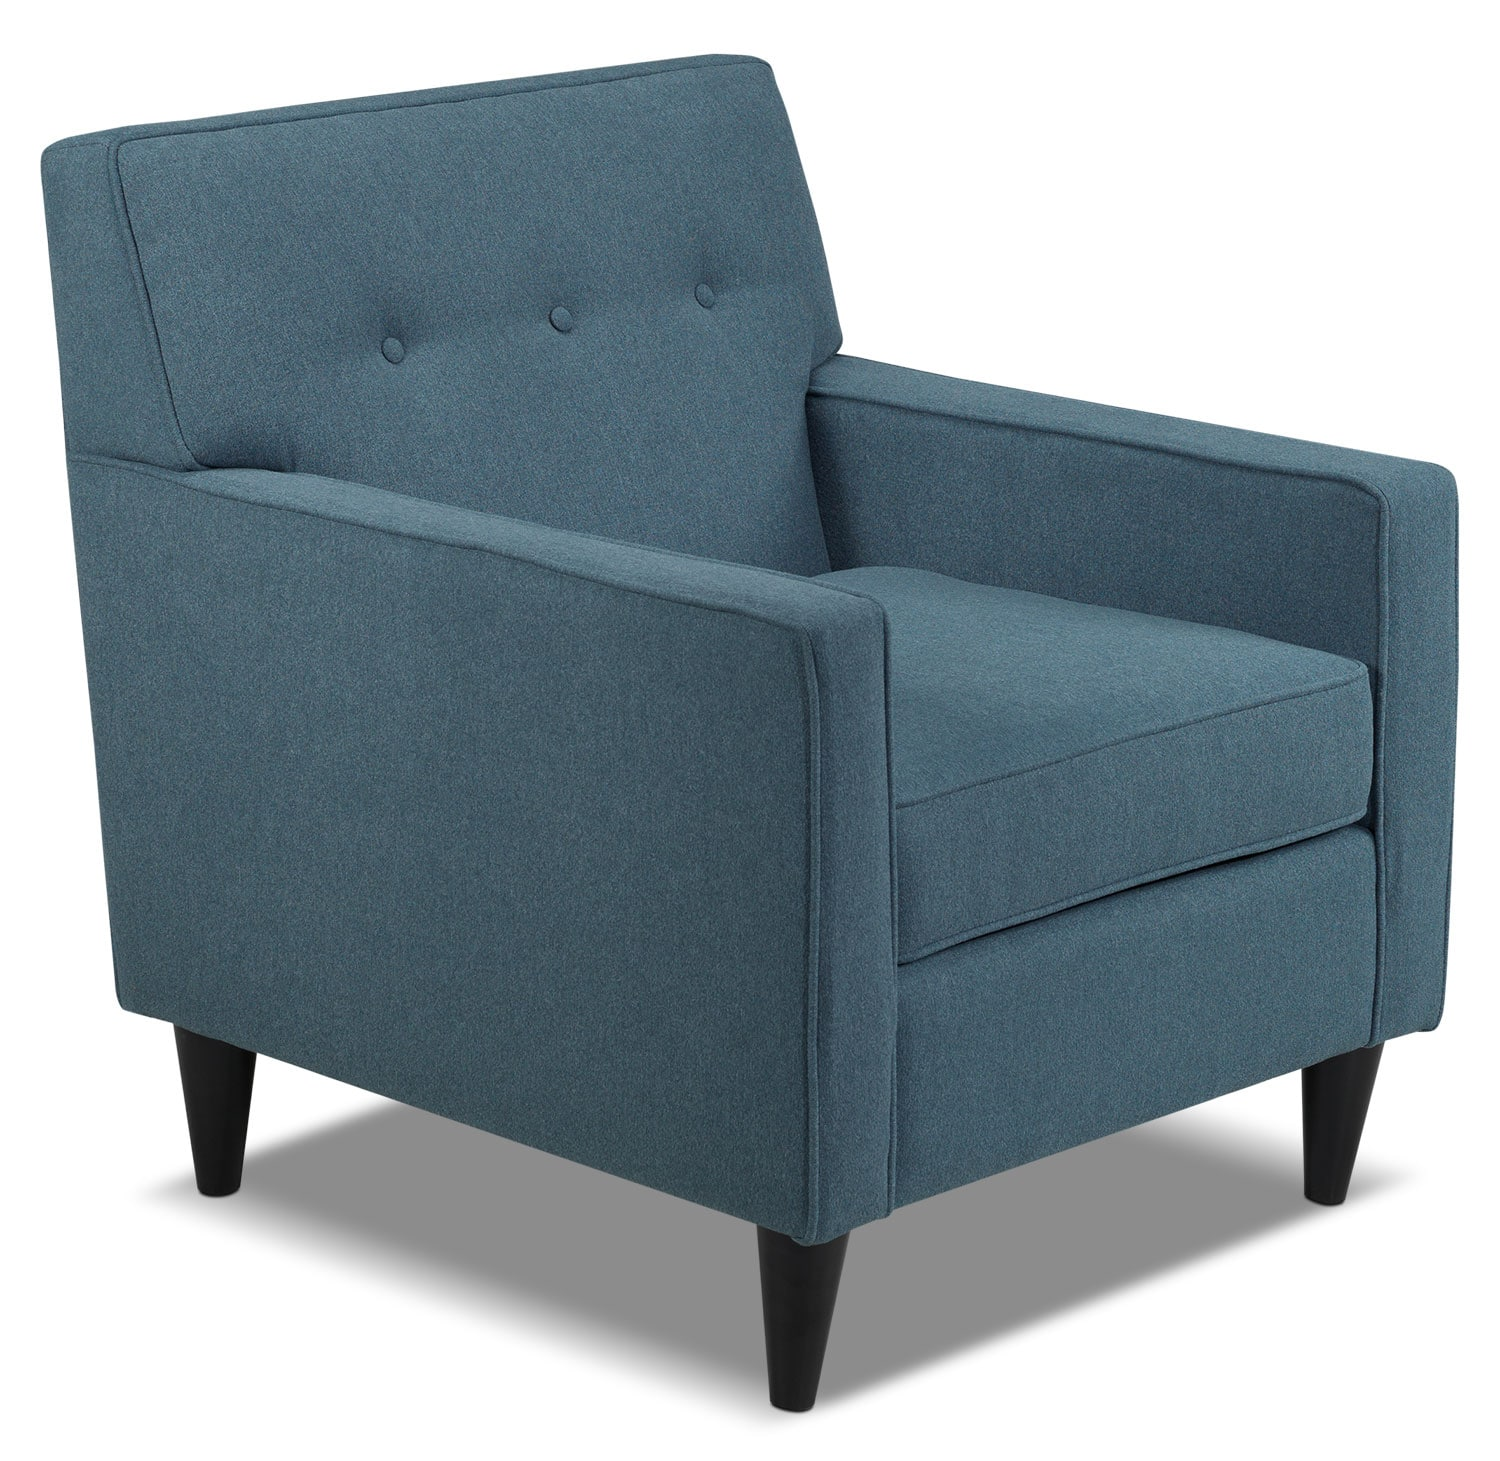 Living Room Furniture - Passerina Chair - Blue